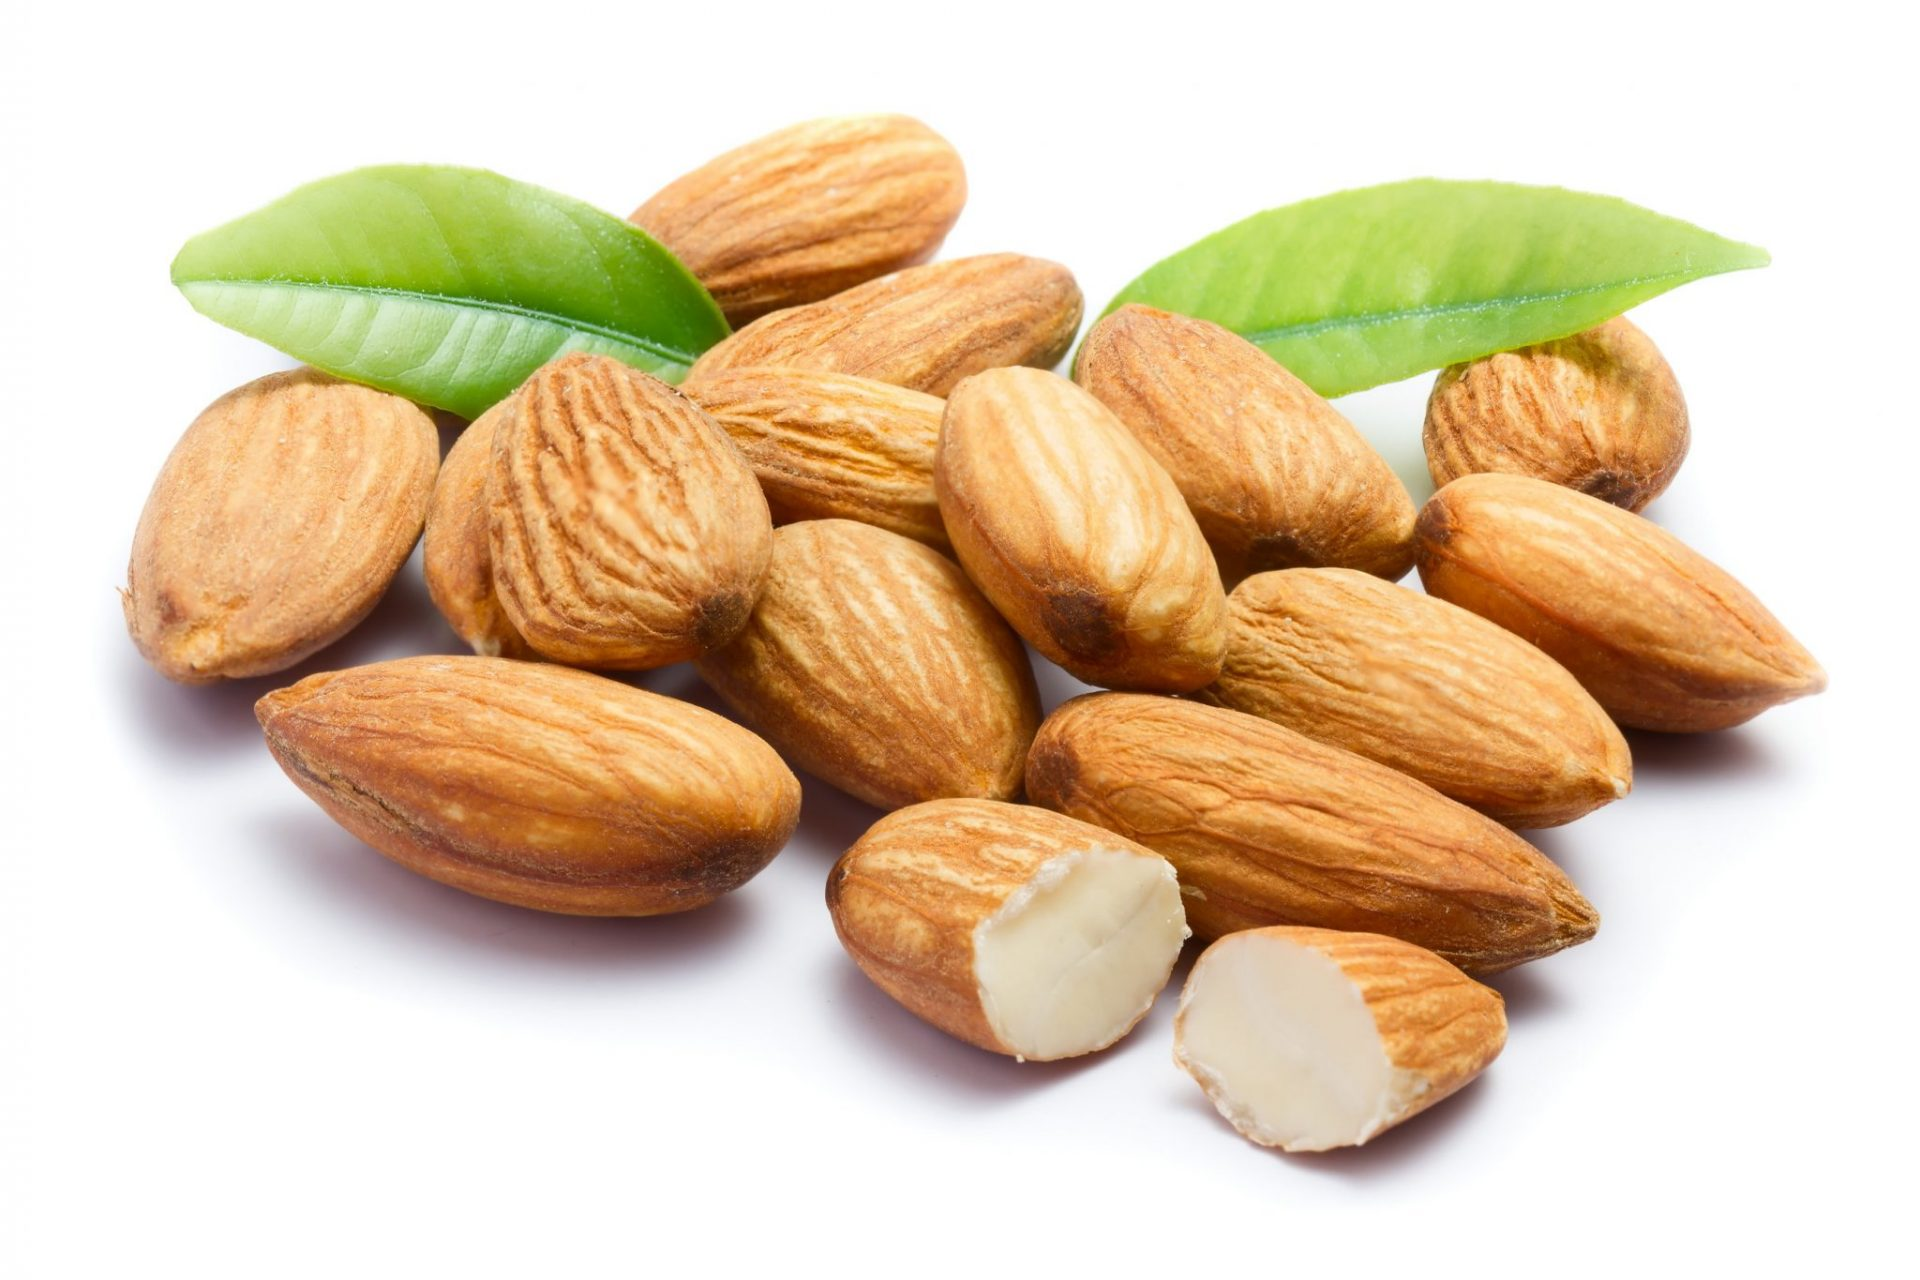 The health benefits of almonds at risk Almond